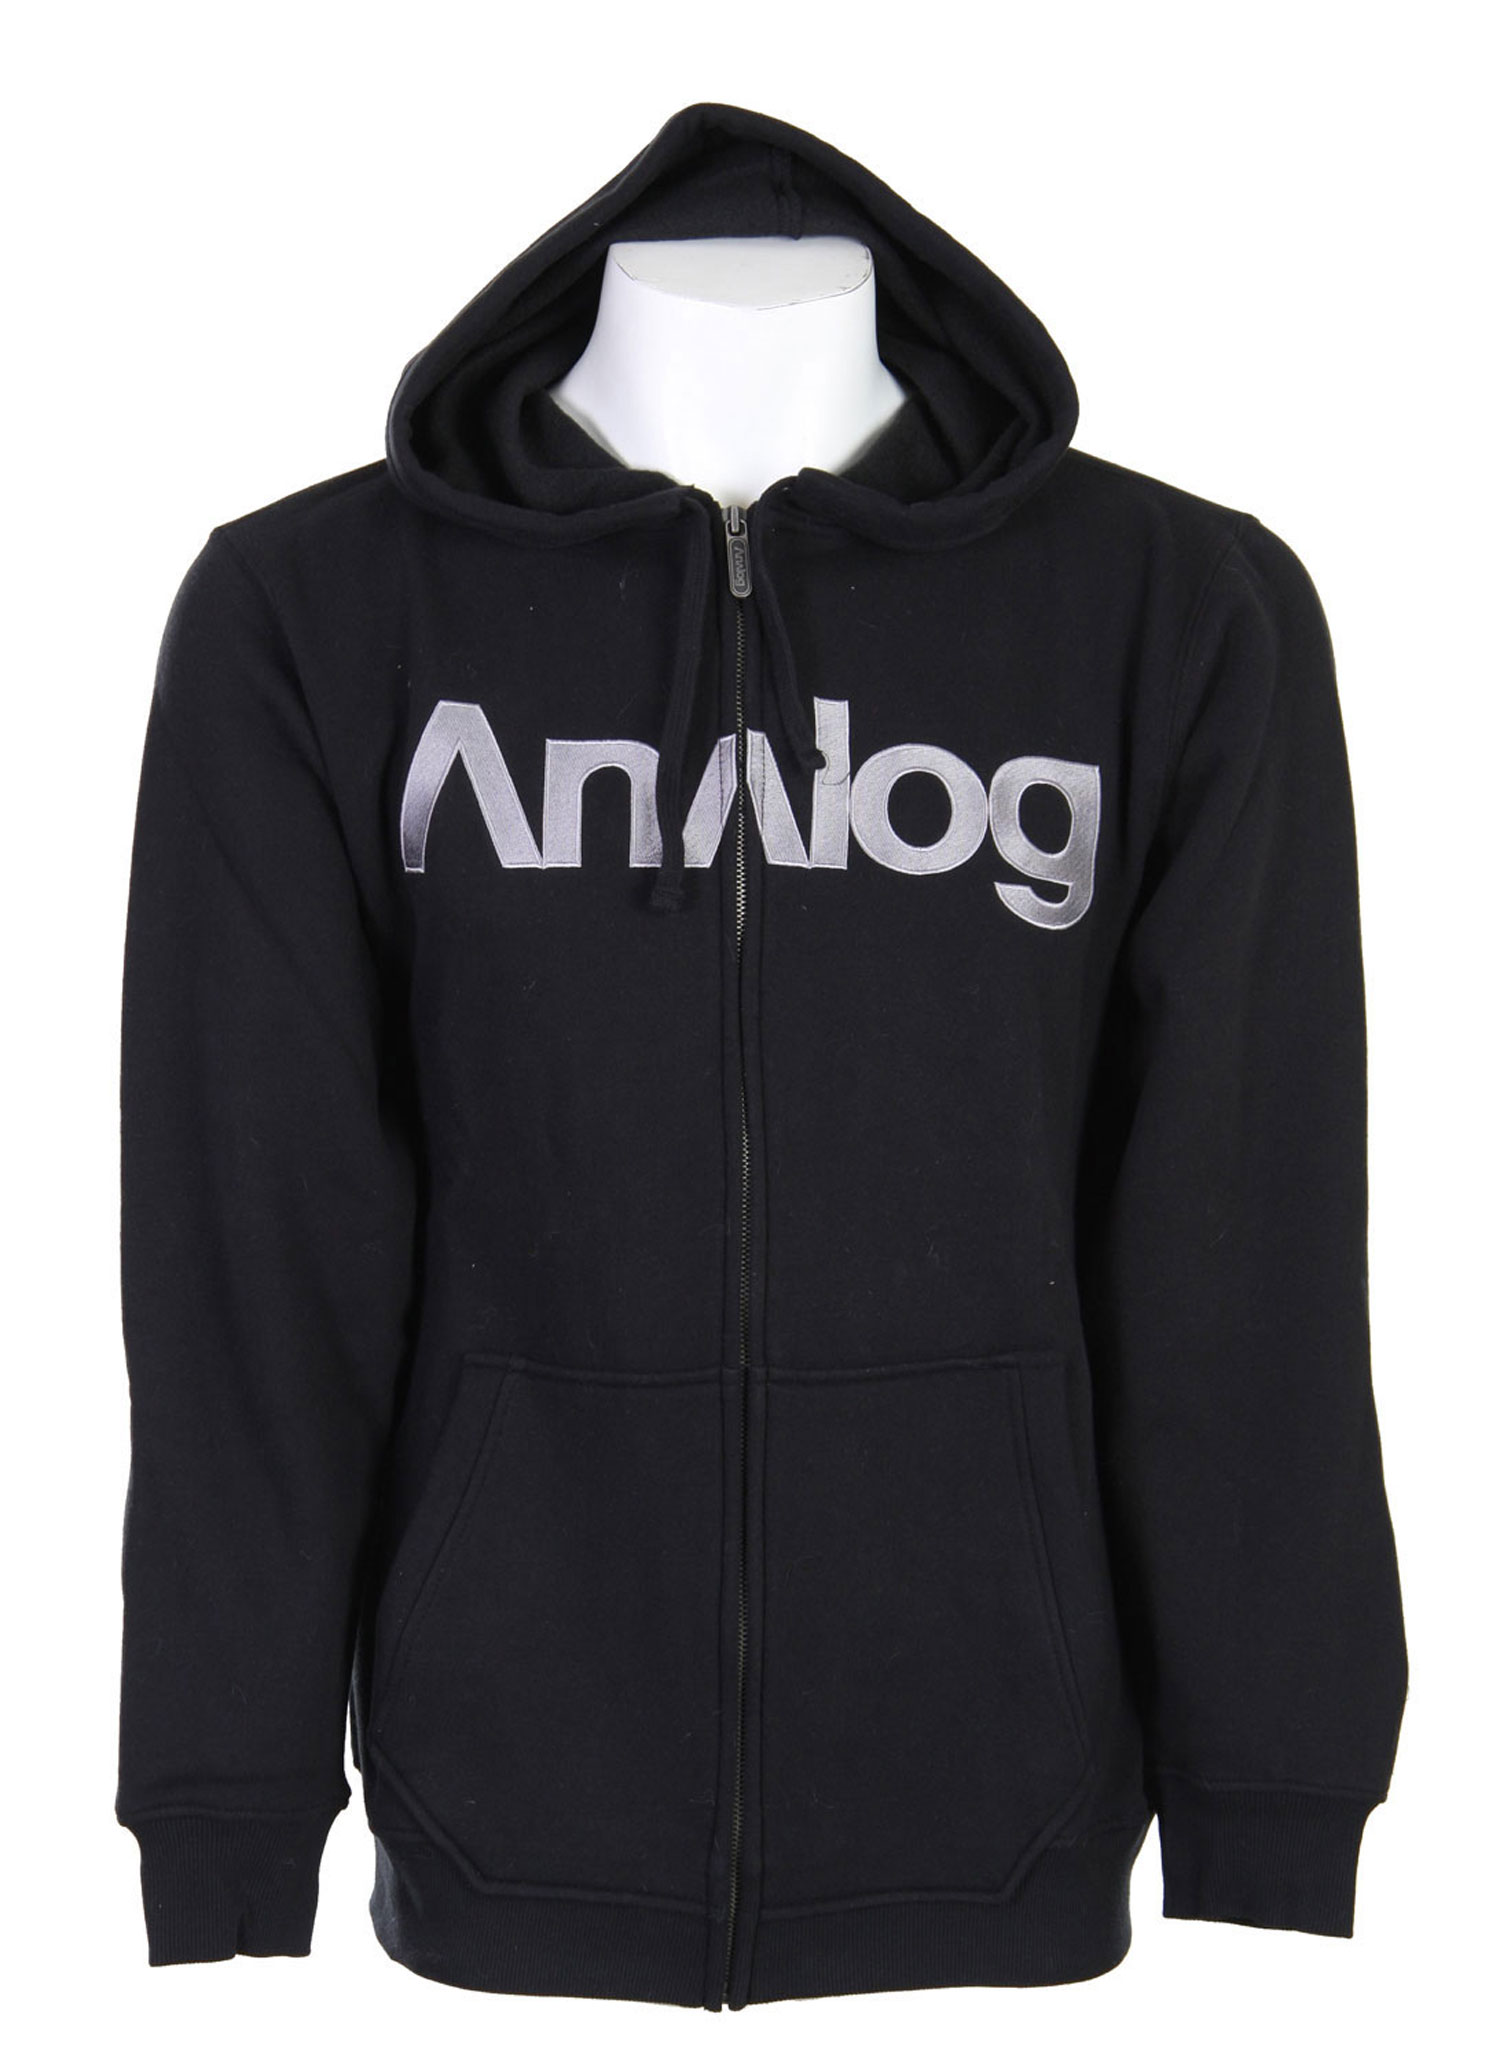 Key Features of the Analog Analogo Hoodie: Regular fit basic zip front sweatshirt with chest embroidery 300gm 80% Cotton/20% Polyester - $39.95